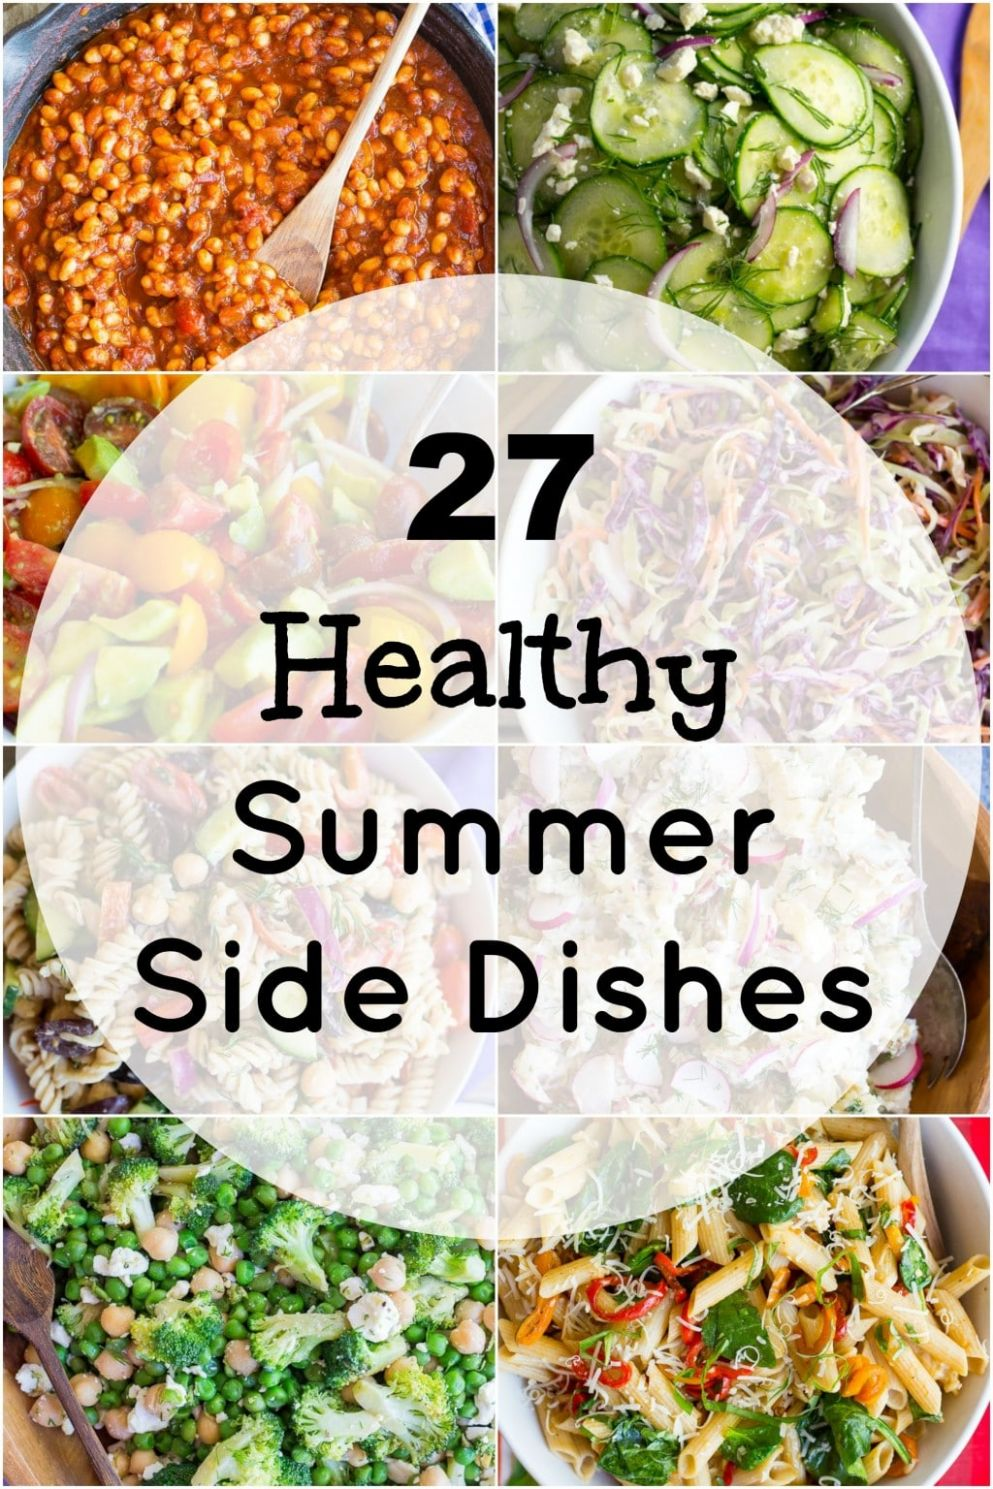 11 Healthy Summer Side Dishes - She Likes Food - Recipes Summer Side Dishes